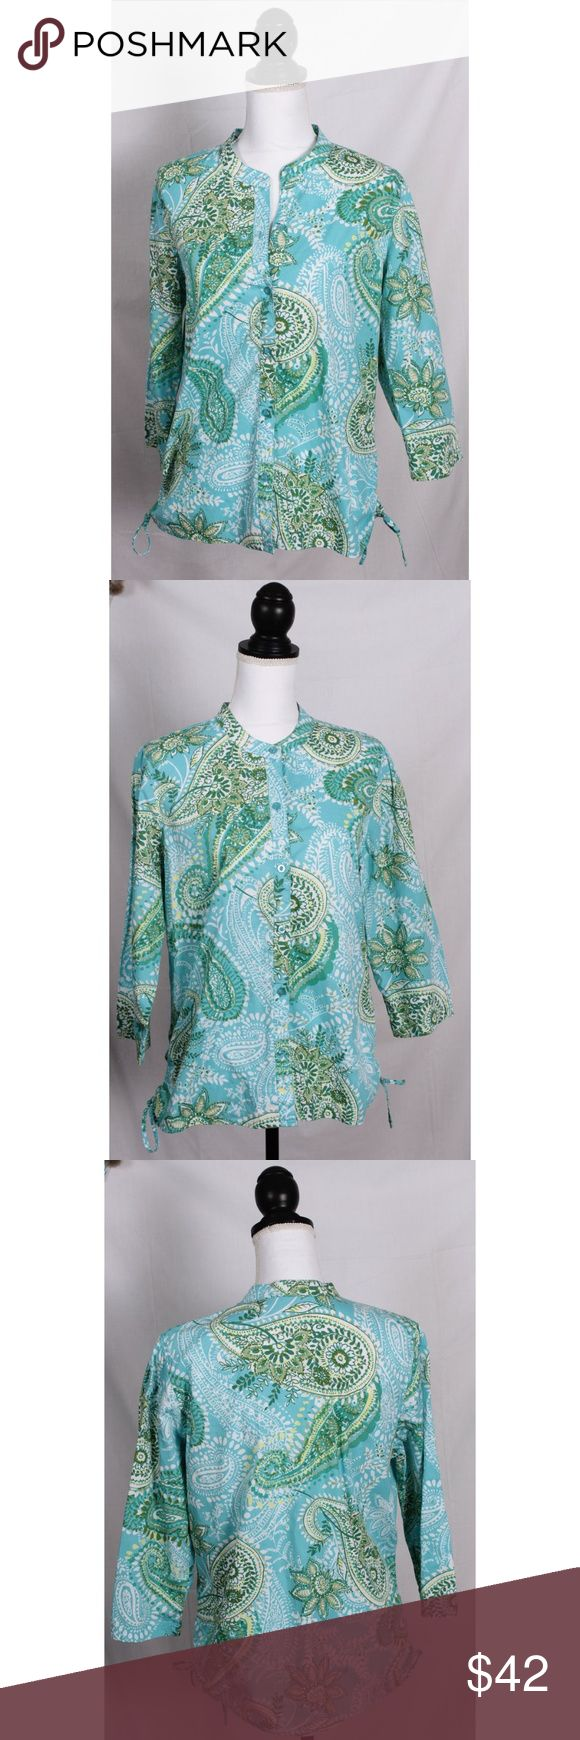 Print Top in blue green Caribbean Joe offers relaxing clothing to put you in the vacation state of mind.   Machine Wash Tumble Dry Low 100% Cotton Imported Print  3/4 Sleeve Caribbean Joe Tops Blouses